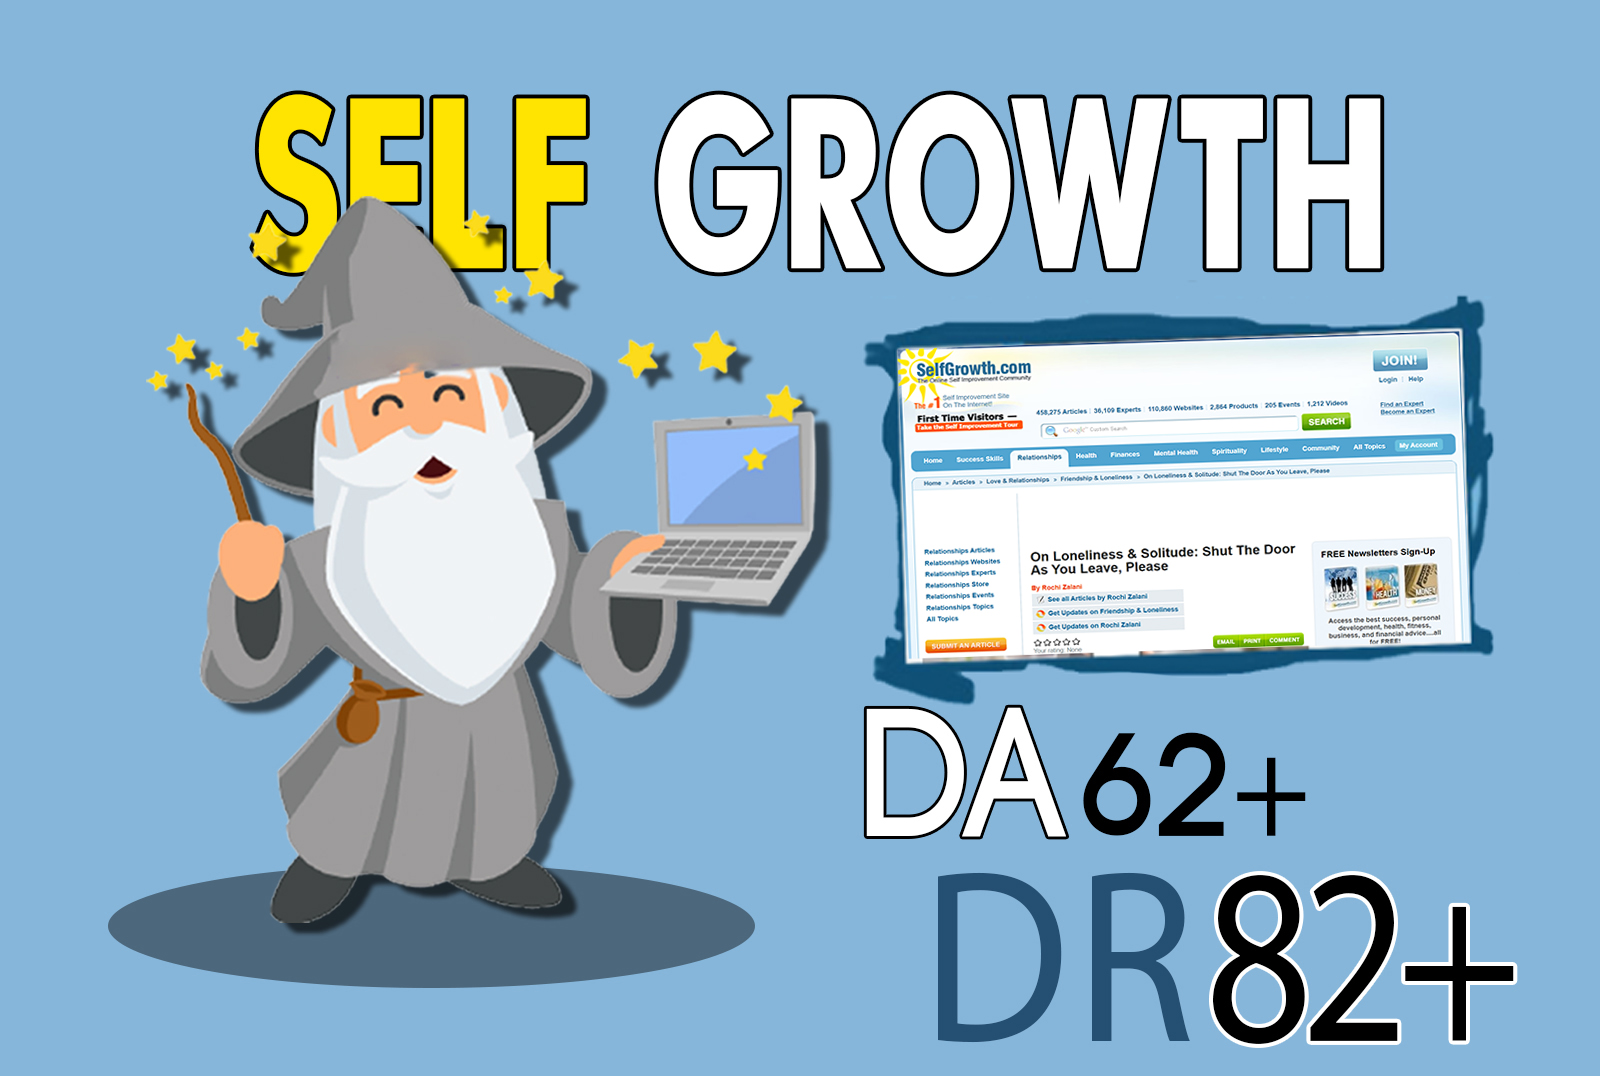 I will publish your article on Selfgrowth